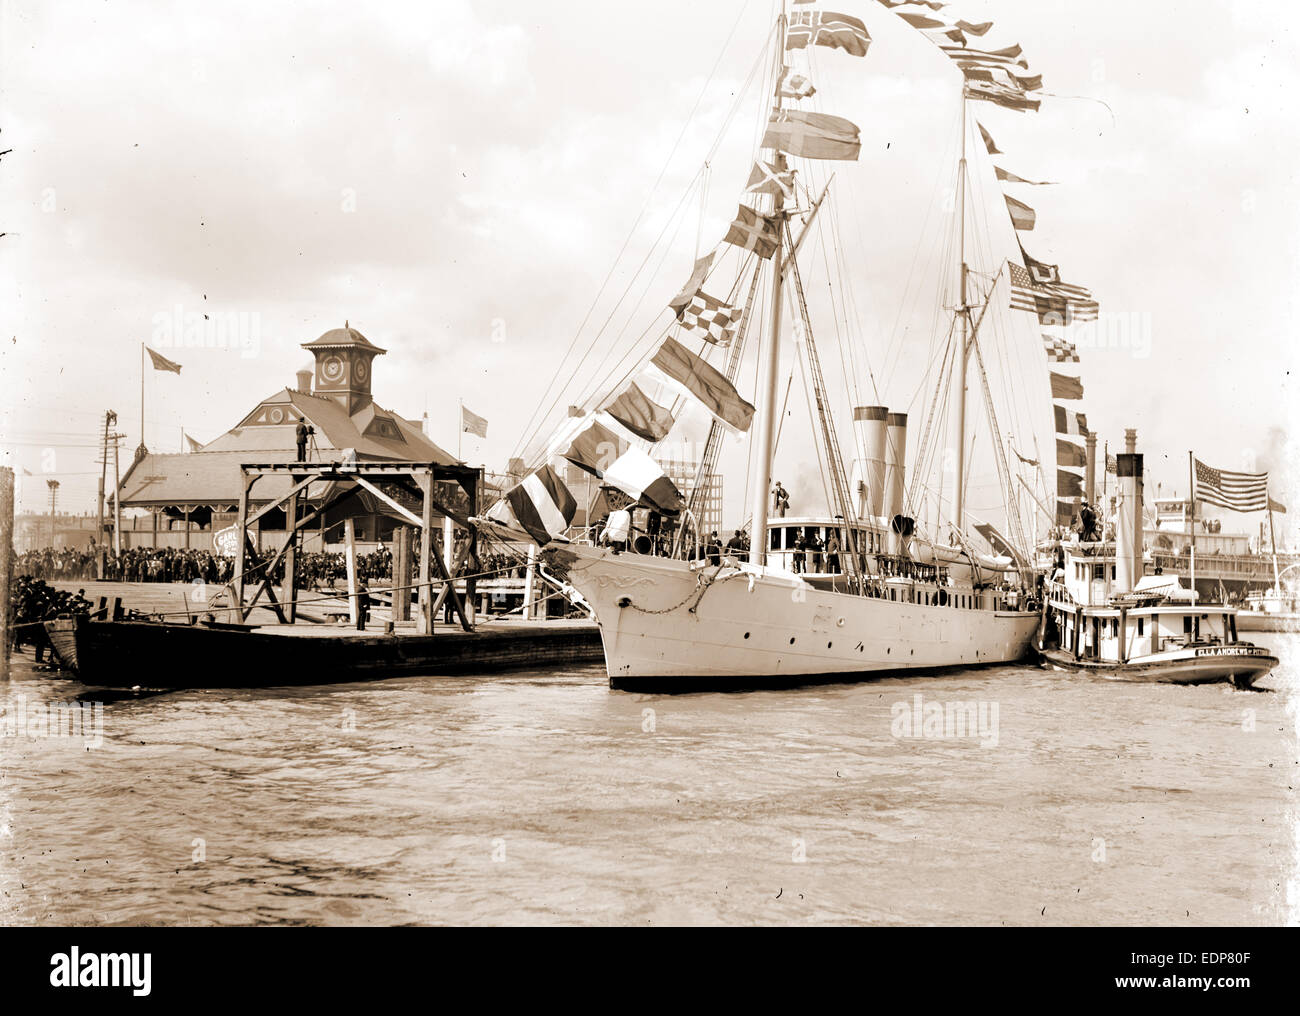 Mardi Gras, New Orleans, U.S.S. Galveston with Rex, Galveston (Cruiser), Cruisers (Warships), American, Carnival, - Stock Image